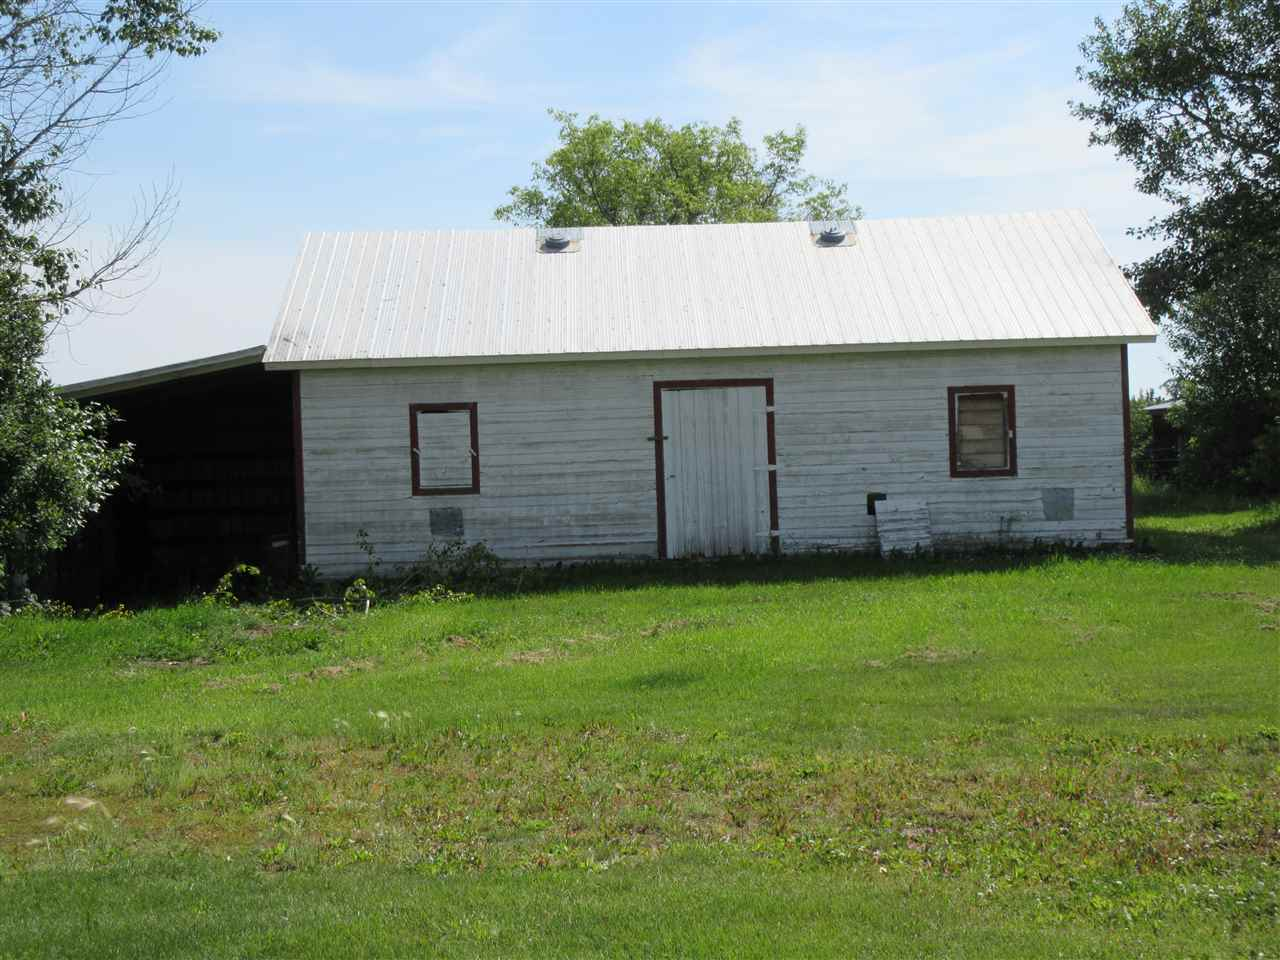 Photo 23: 60515 RR 223: Rural Thorhild County House for sale : MLS® # E4073917